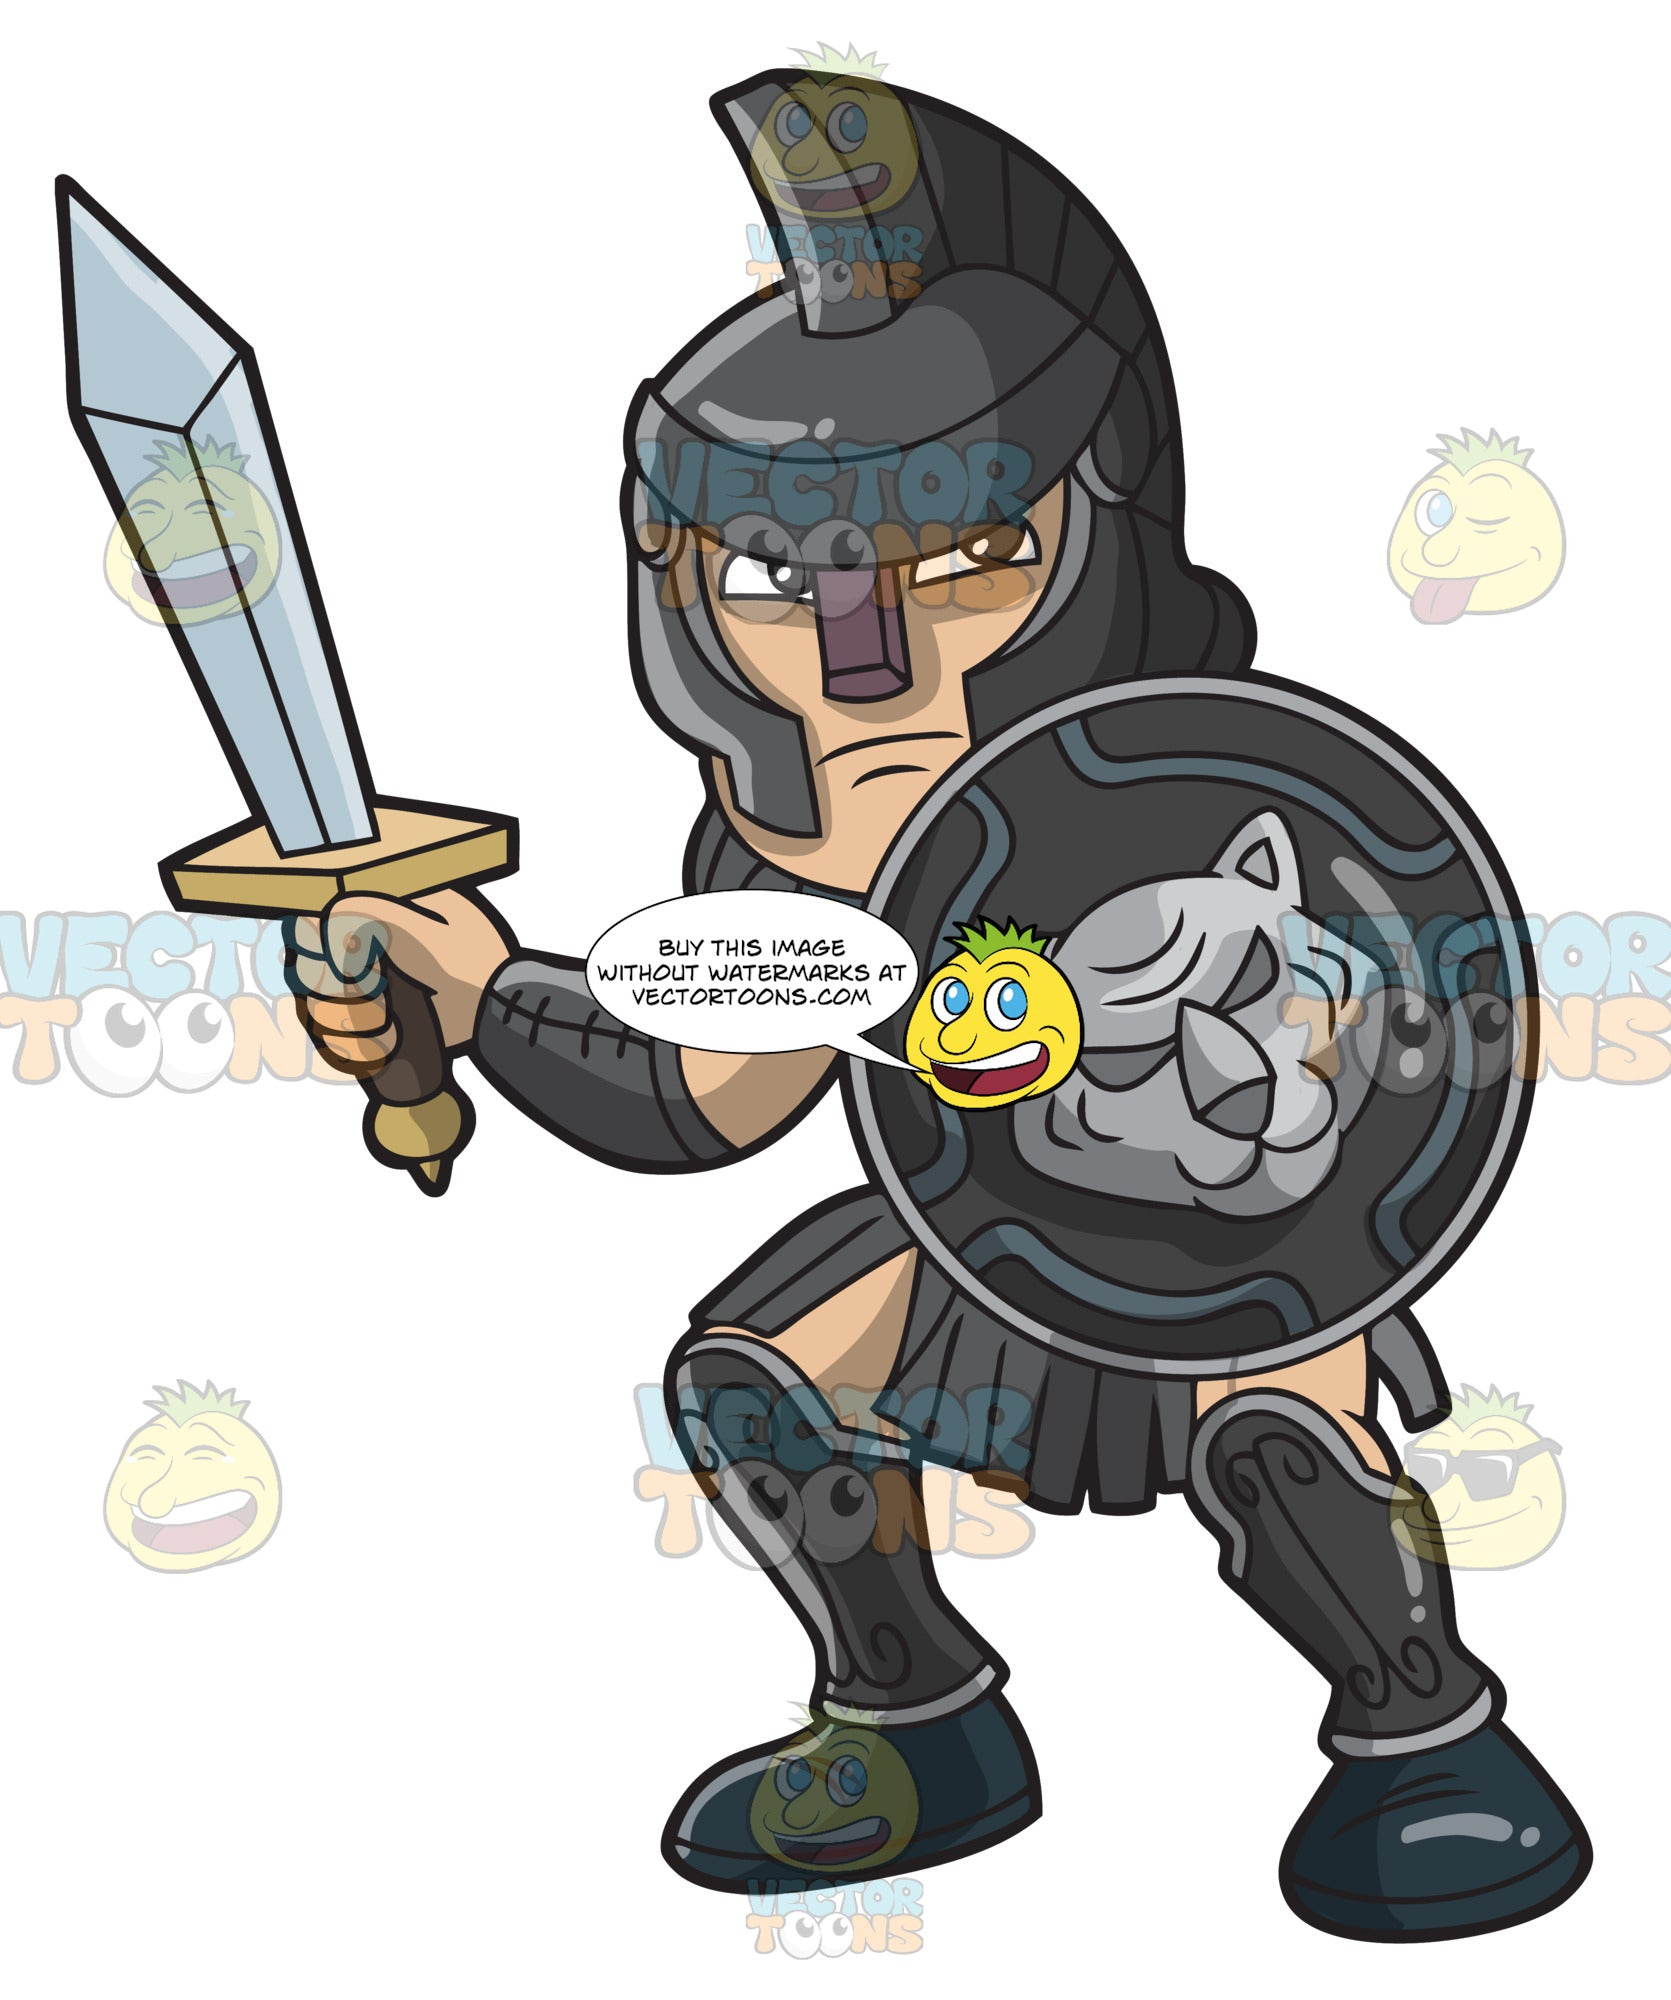 7c6cc5feebf A Wise And Strong Gladiator – Clipart Cartoons By VectorToons